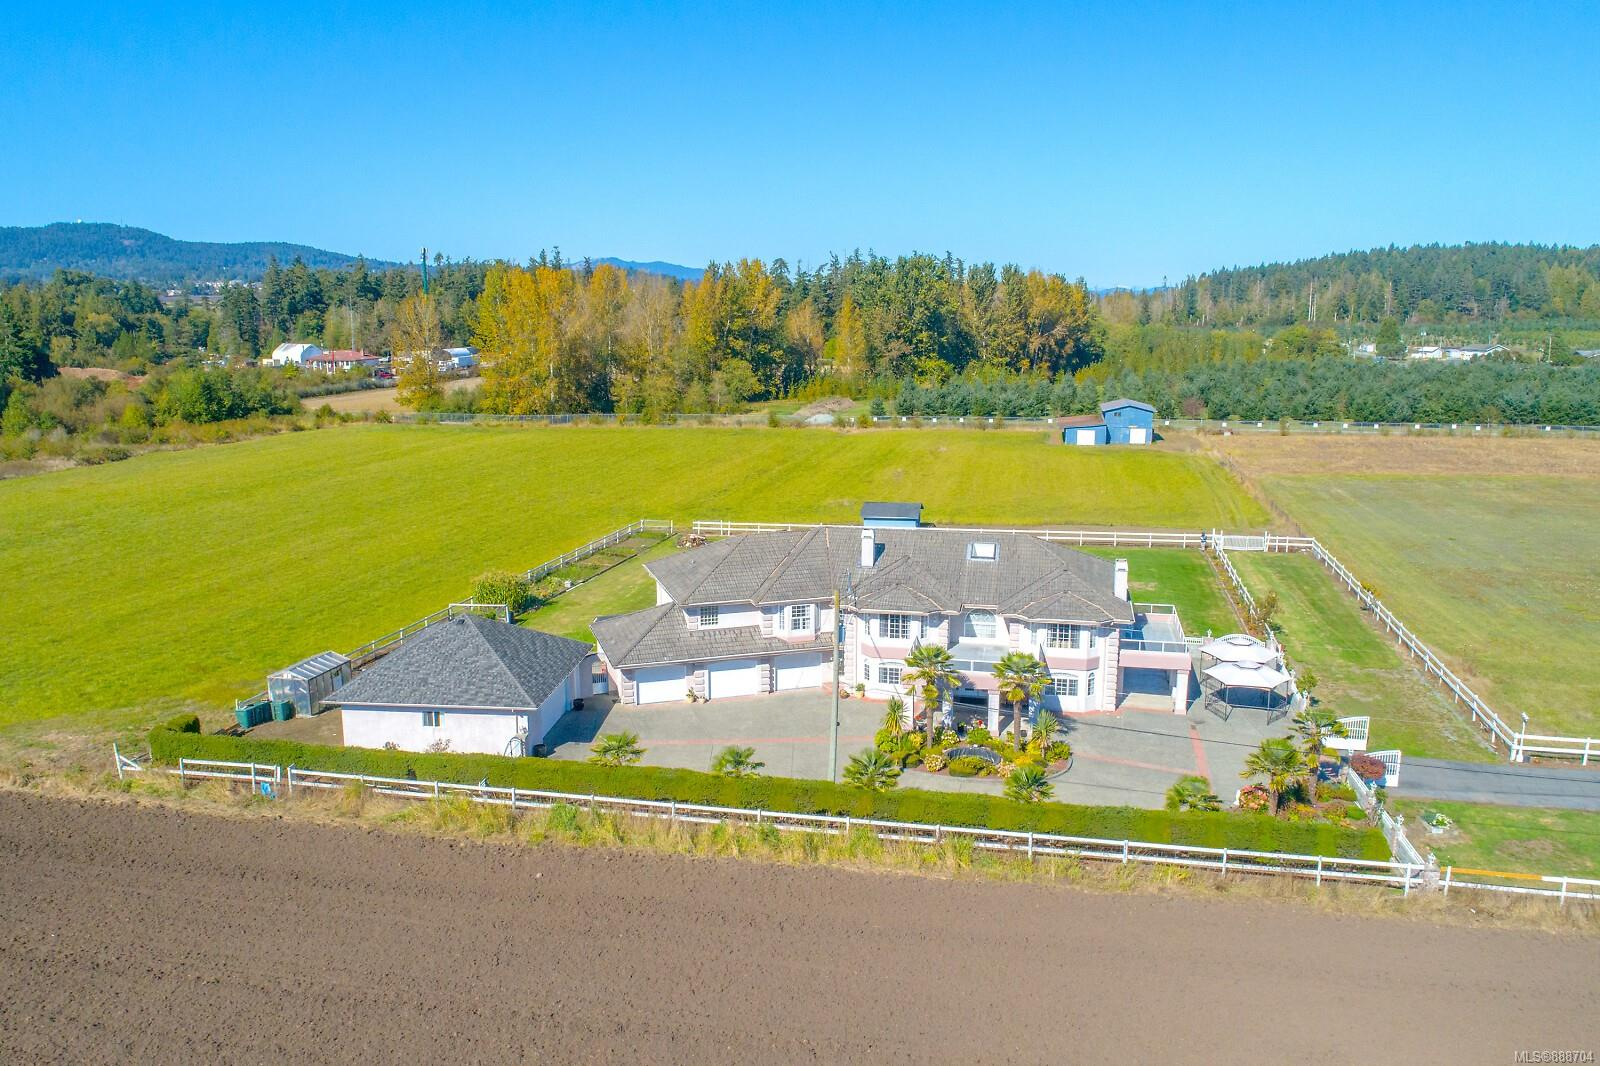 9.76 ACRE PRIVATE Estate Property in highly sought after Central Saanich.  It's hard to describe the feeling you'll get as you make your way home down the beautiful fruit tree & fence lined driveway. This 6 Bed 7 Bath 6327 SqFt property offers an opportunity that doesn't come along very often. Just under 10 acres of prime flat ALR. The lower level features a large rec room, guest bedroom, 4pce bath, wet bar, grand living room, additional bedroom and 5pce bath (Potential 1 bed suite). The 1000 SqFt 3 car garage will fit all the toys. On the upper level you'll find a grand family room, kitchen, dining room, separate living room, 4 beds including a large master bedroom w/5pce en-suite & walk-in closet. There's also a large detached 2 car garage/event room w/wet bar and 2 Pce bath. Top it off with a 2000 SqFt barn, chicken coop, full security system w/cameras, beautiful landscaping and you have one incredible property to call home. You don't want miss  this incredible buying opportunity.